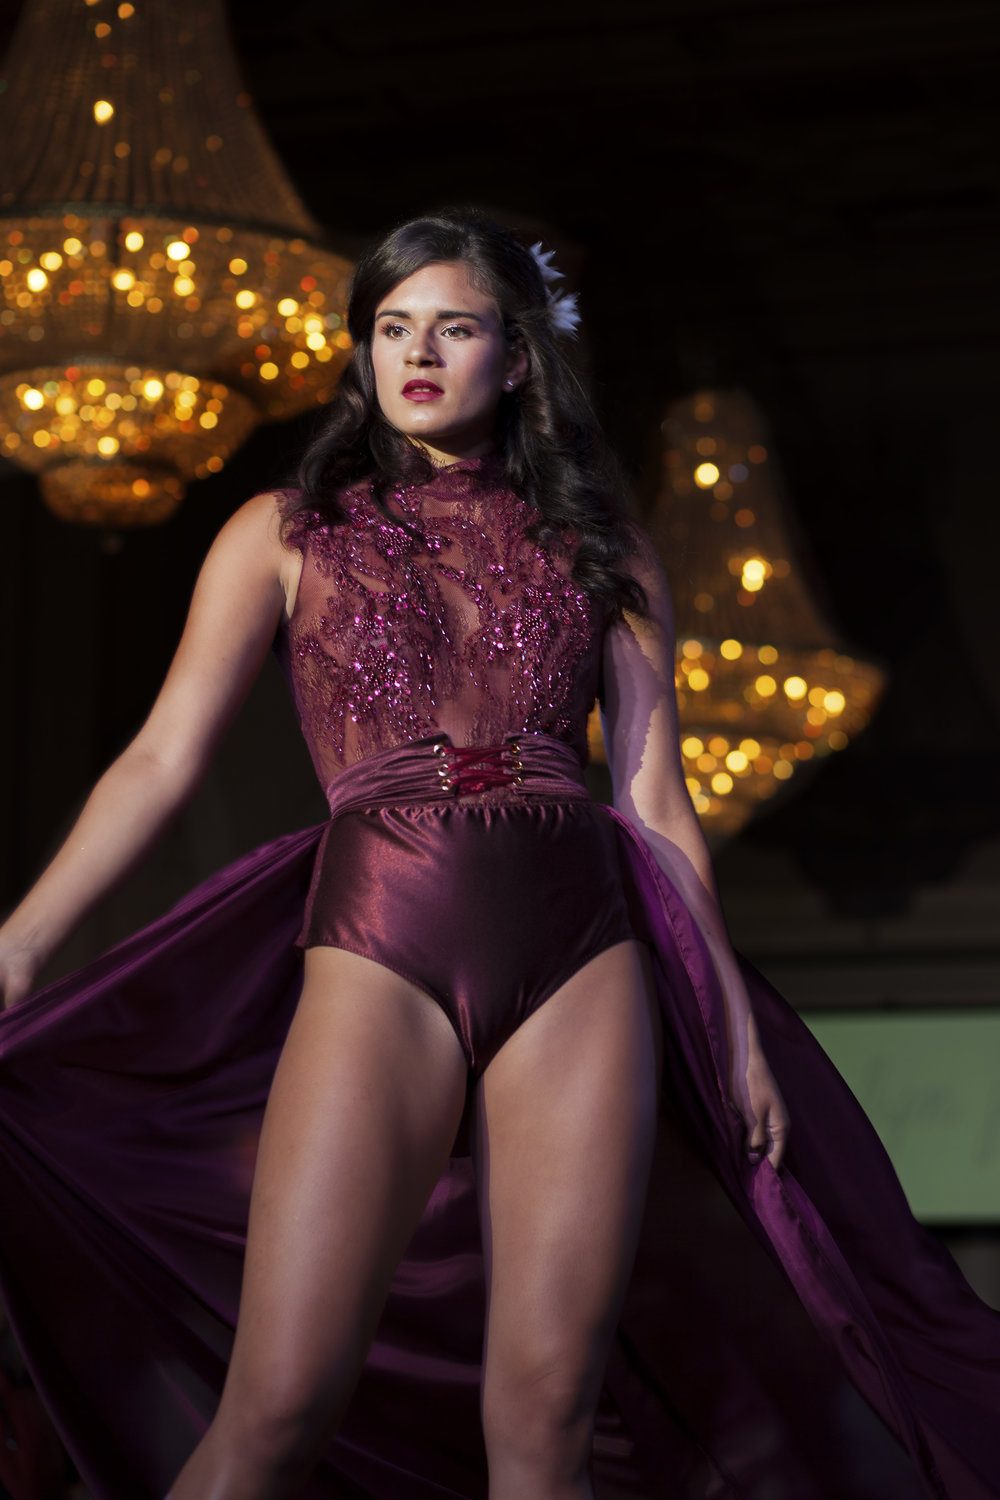 Sonia Weber slays the runway in a daring bordeaux hand appliqued bodysuit and corseted silk habotai skirt.